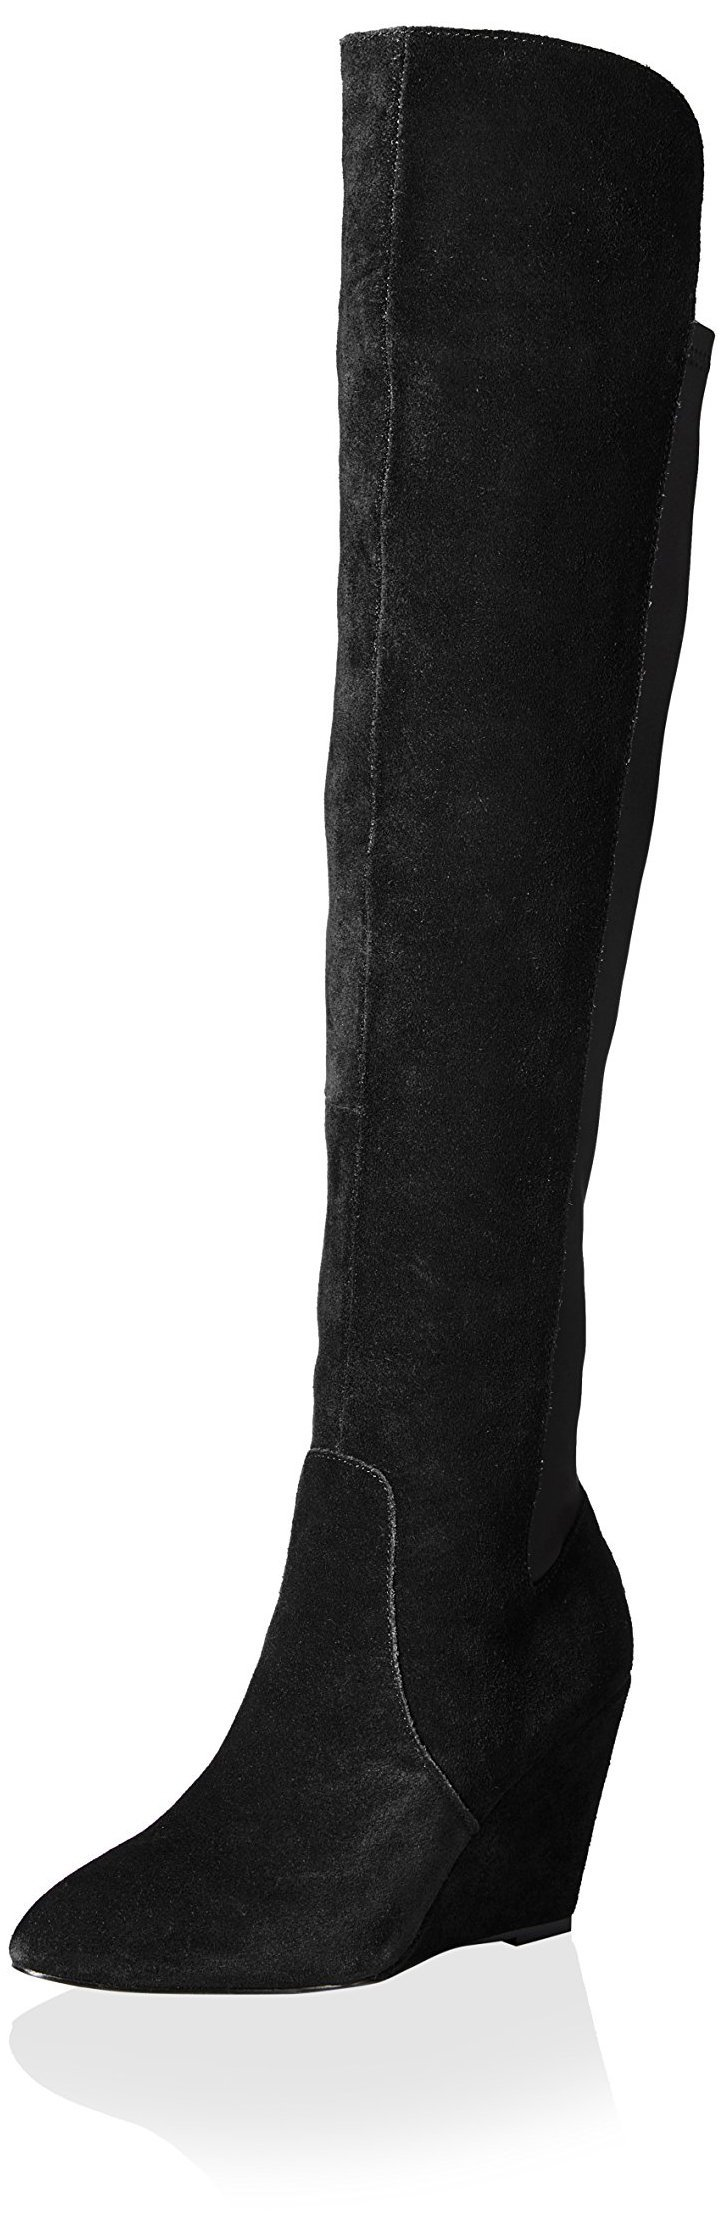 Charles By Charles David Women's Eddie Boot, Black, 7.5 M US